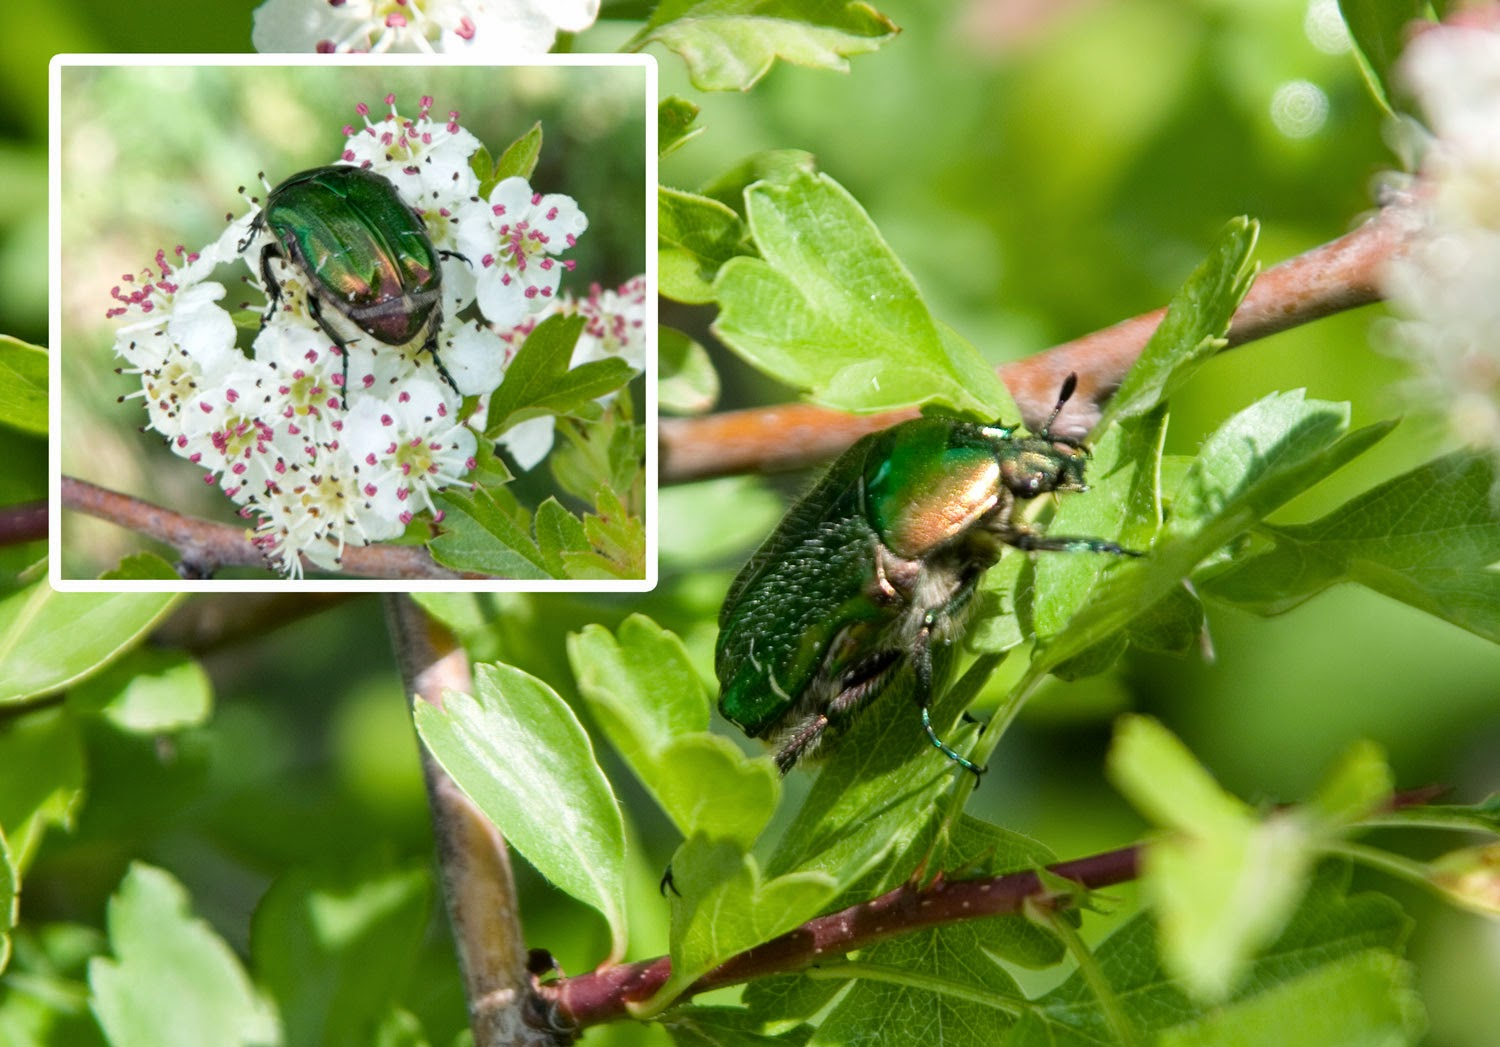 Two beautiful beetles in the blossom